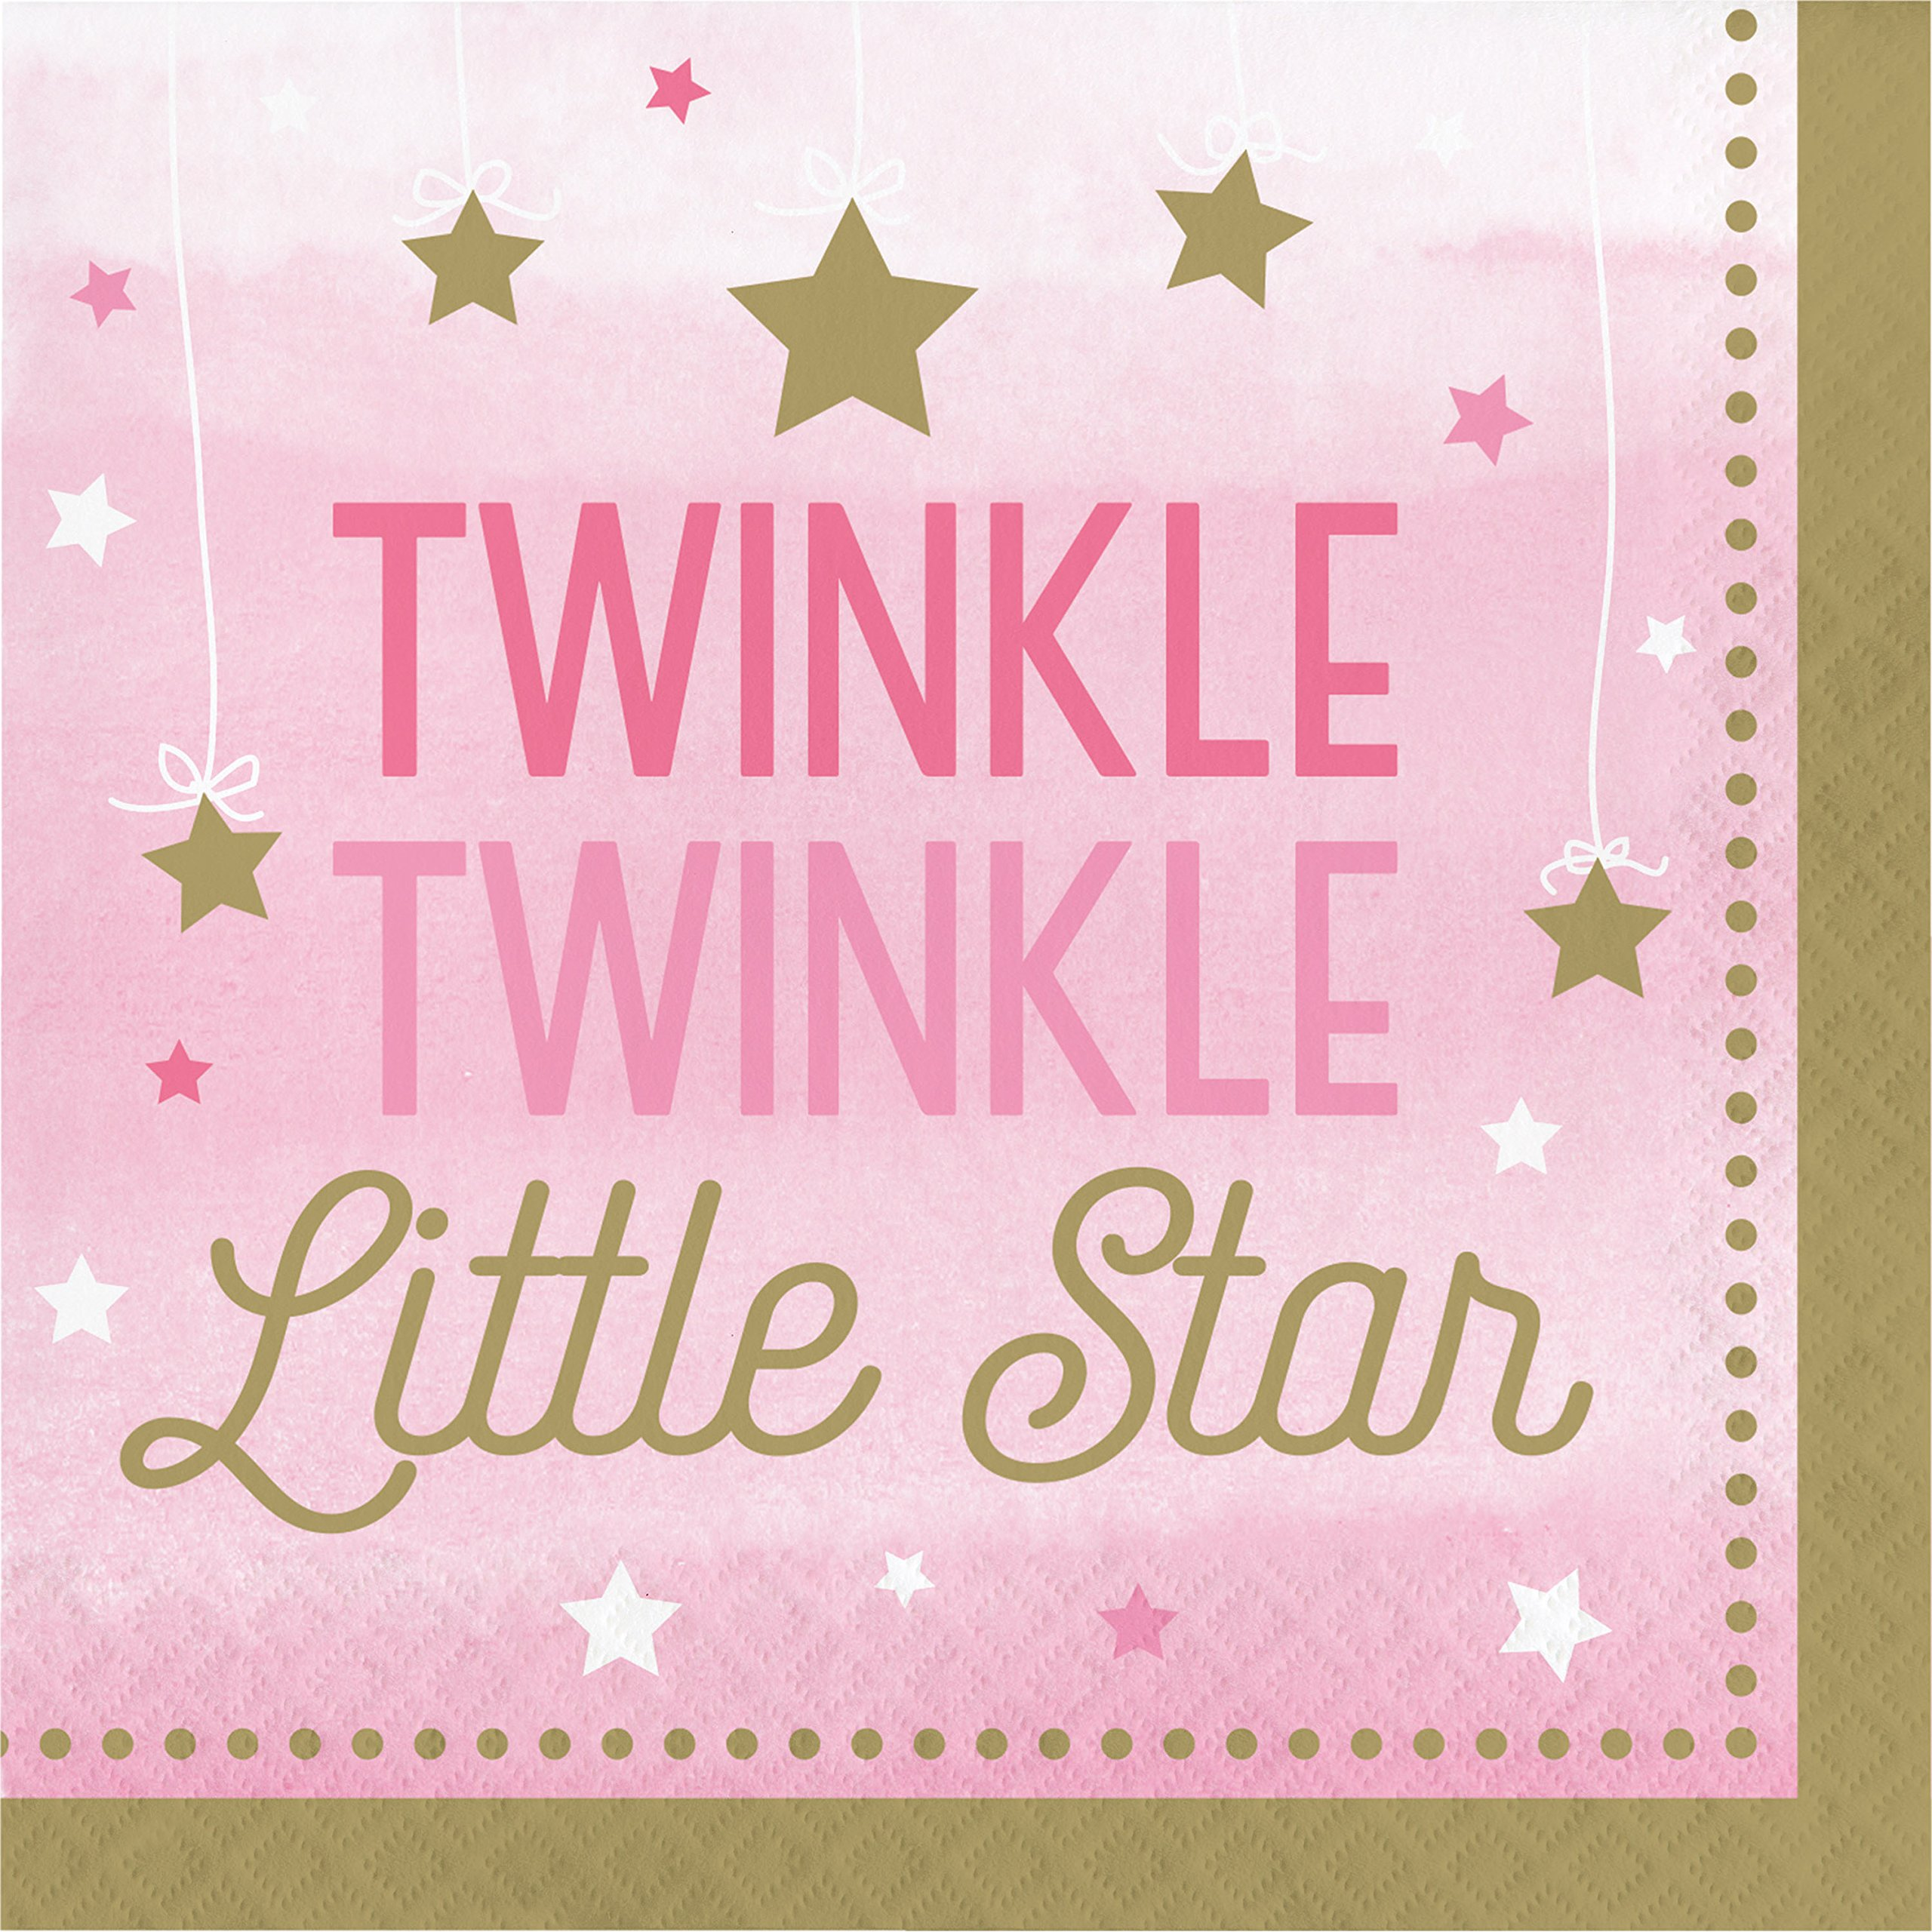 One Little Star Girl Napkins, 48 ct by Creative Converting